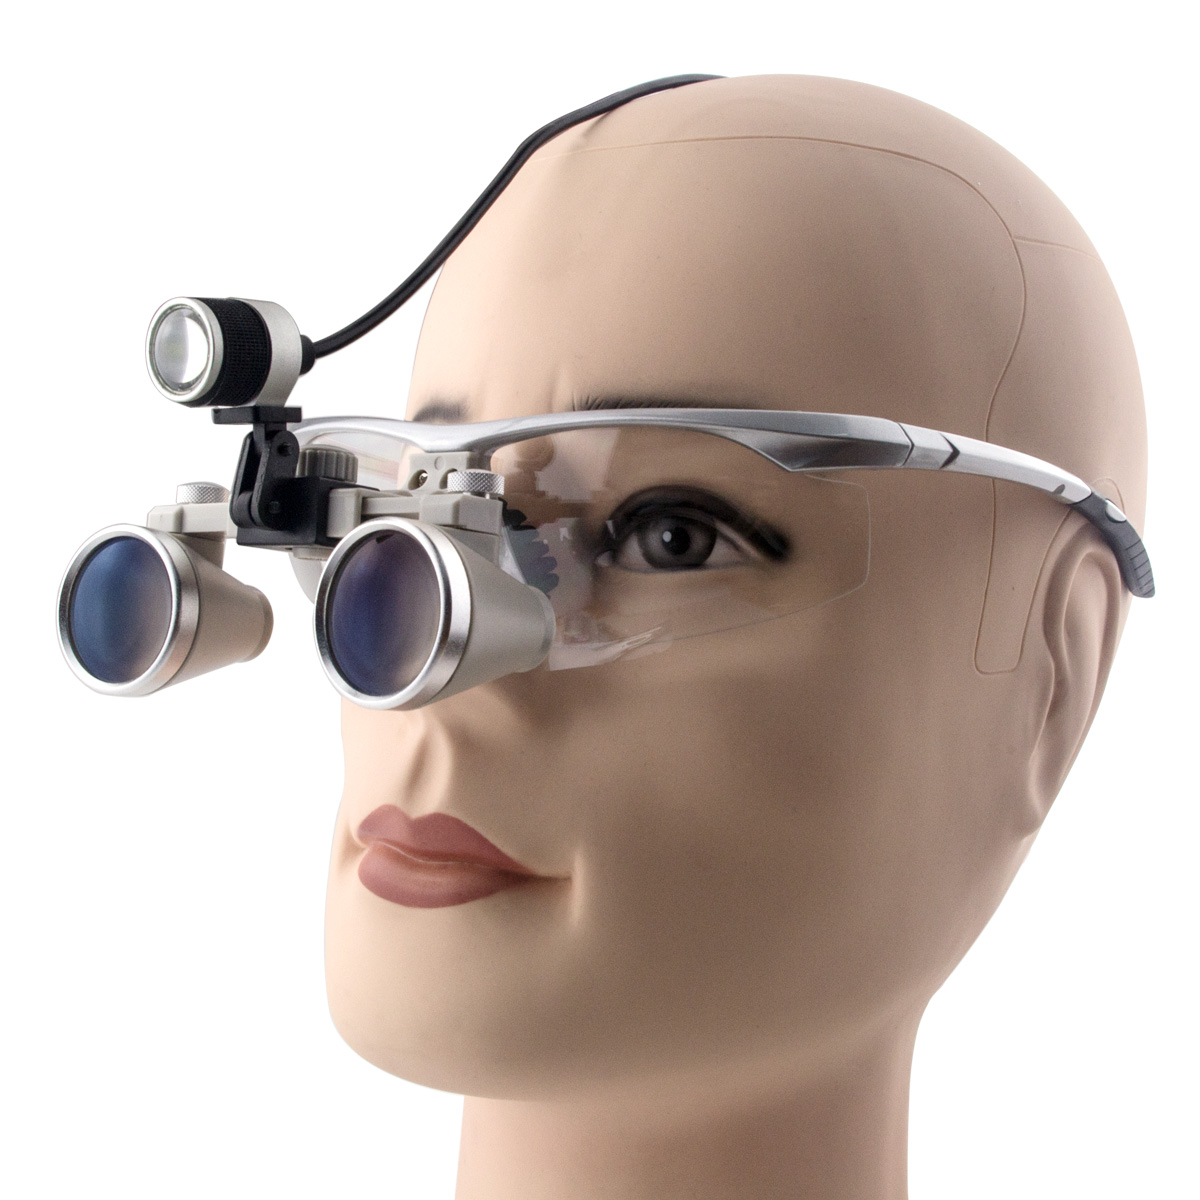 Spark 2.3X Magnification 360-460mm Dental Loupes Surgical Jeweler Loupes Glasses BP Sports Frame with LED Head Light spark 5 0x magnification professional